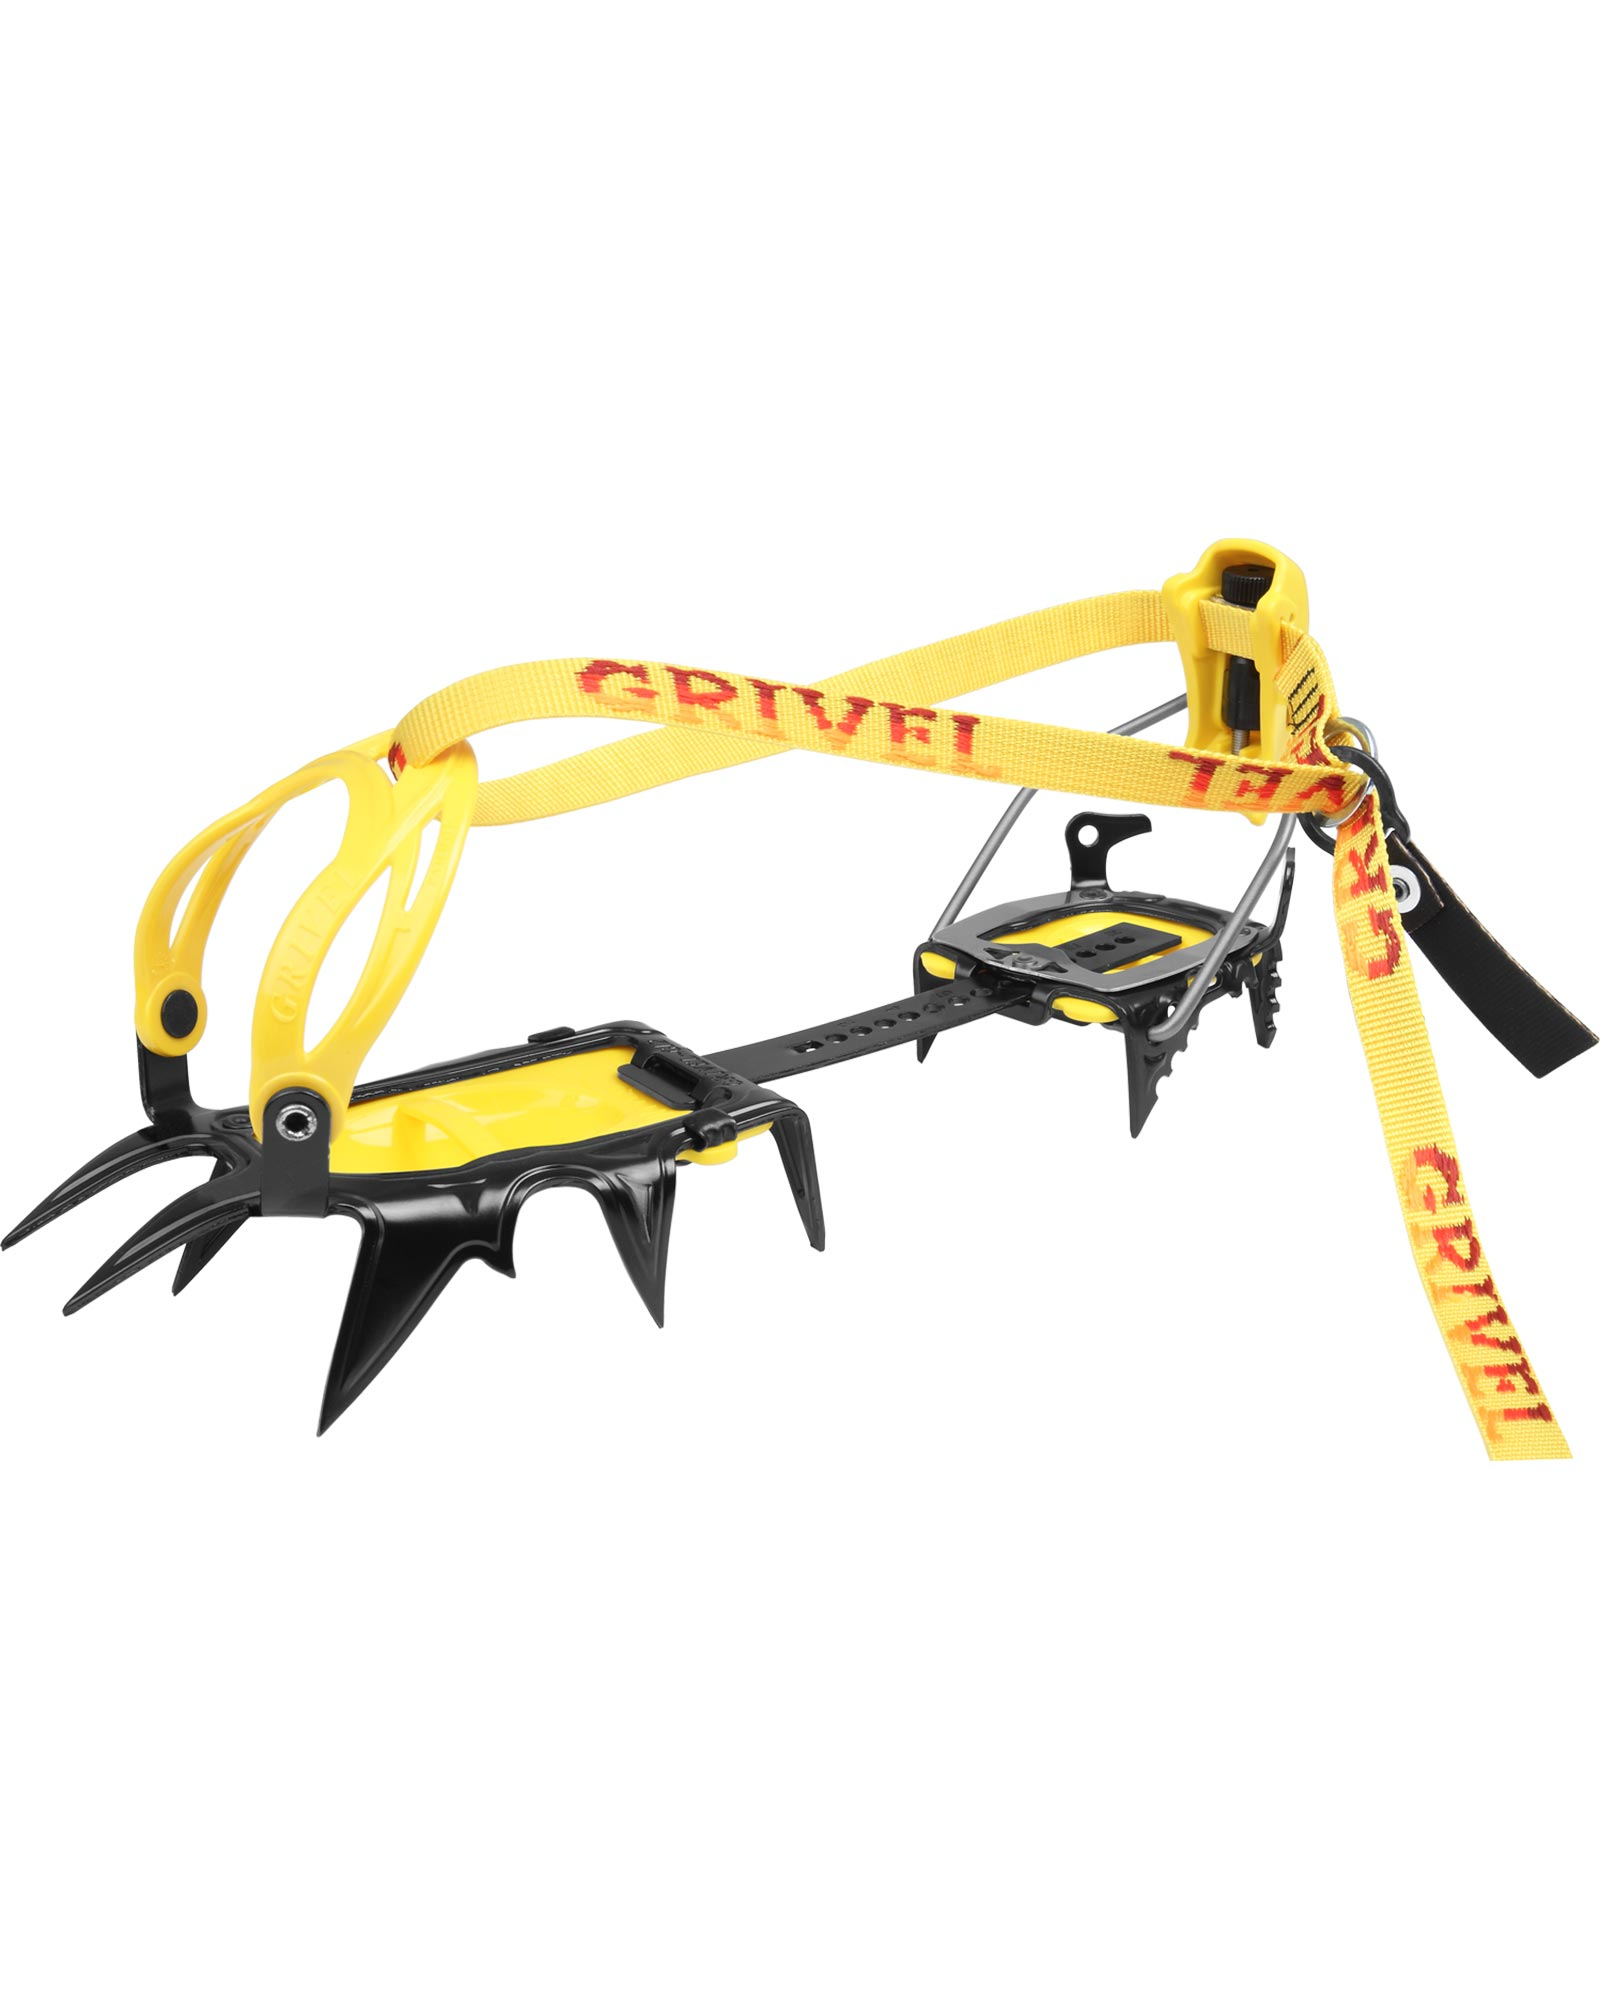 Grivel G12 New Matic Crampon 0